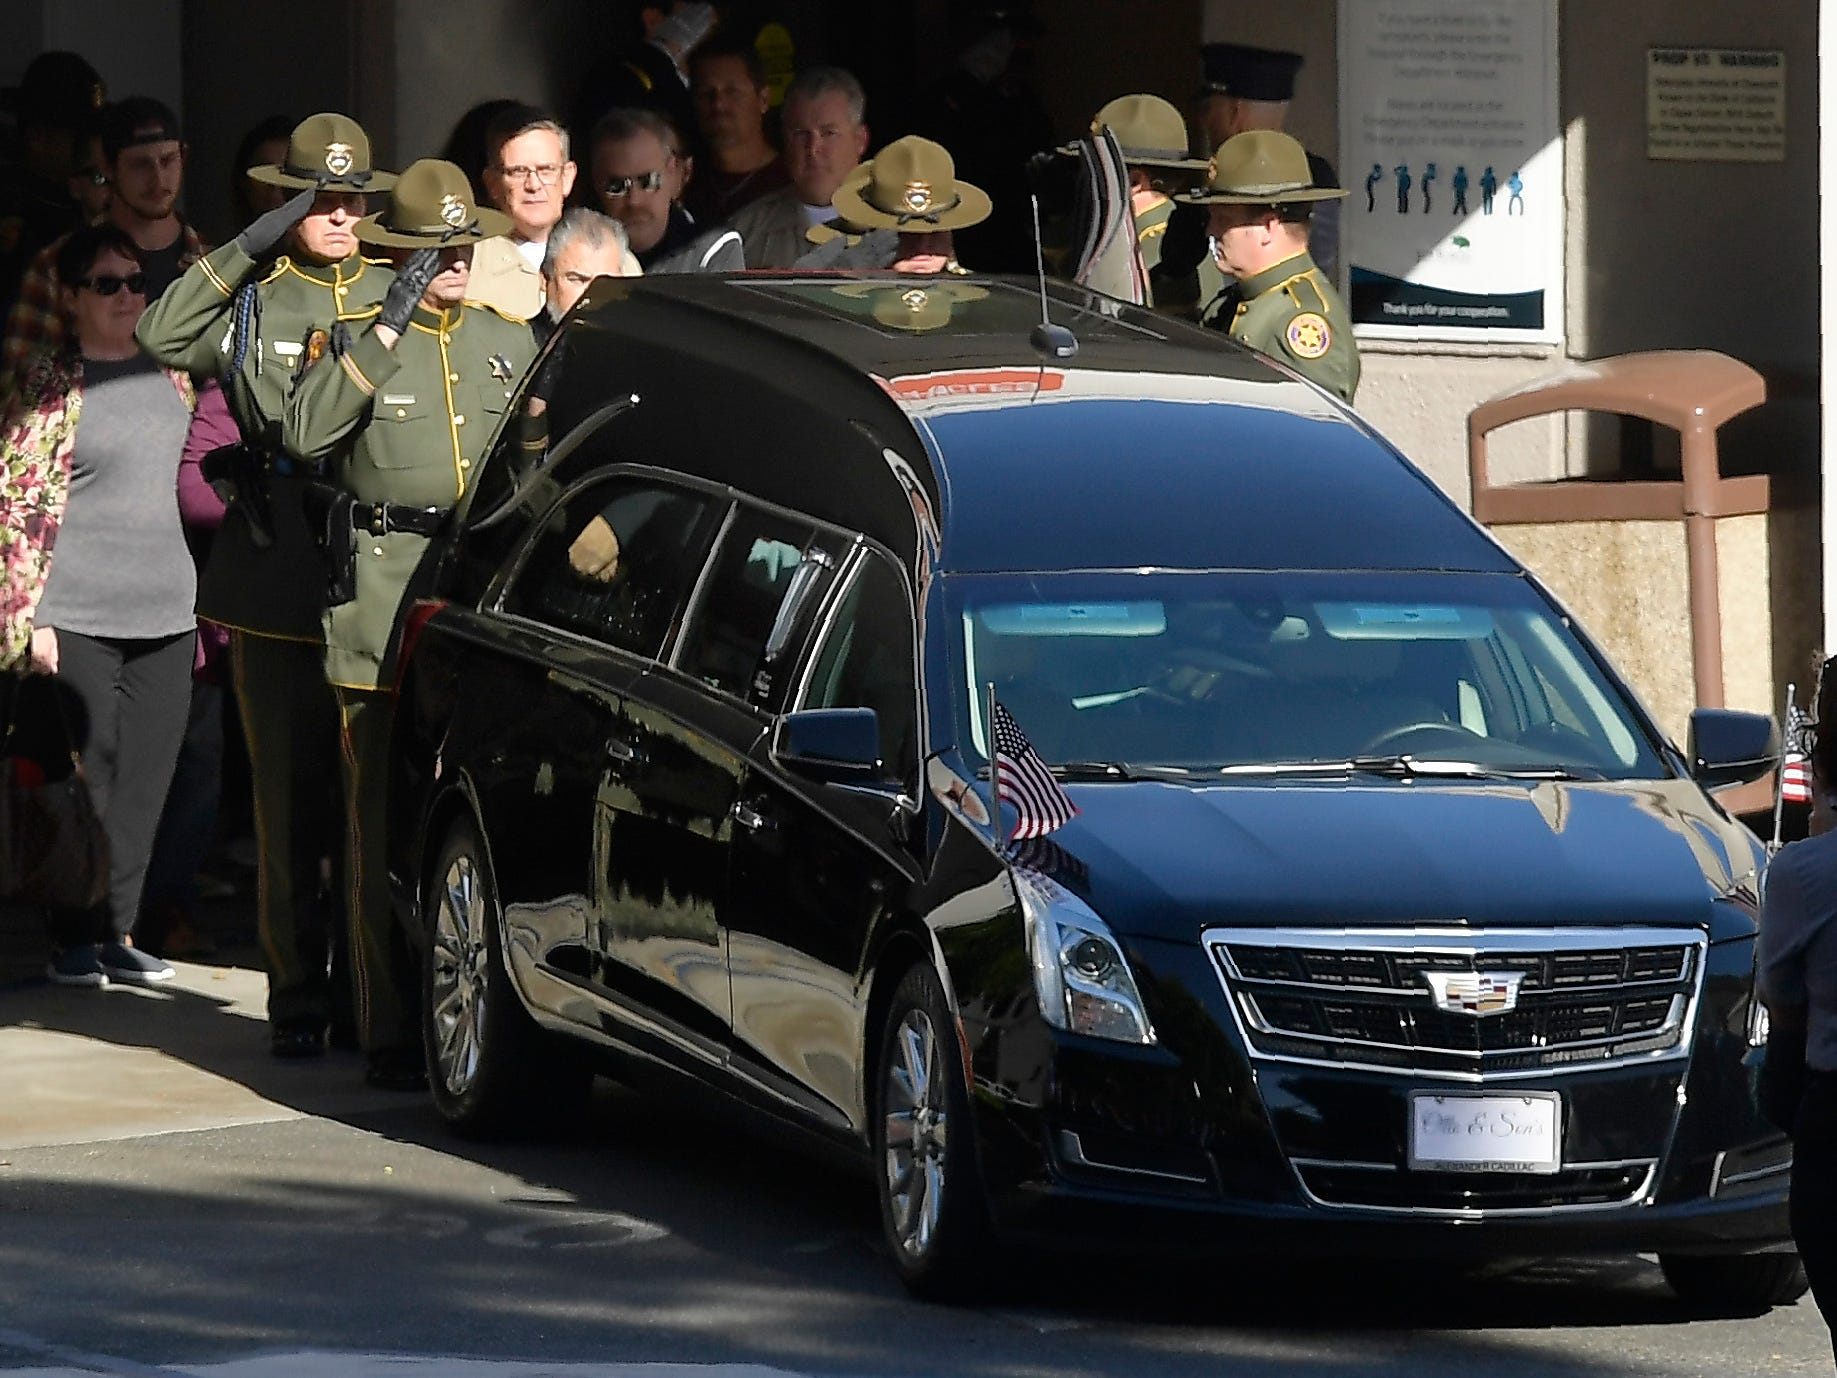 """An honor guard salutes the body of Ventura County Sheriff's Department Sgt. Ron Helus before it departs the Los Robles Regional Medical Center Thursday, Nov. 8, 2018, in Thousand Oaks, Calif. Helus was killed after a gunman opened fire the night before inside a country dance bar crowded with hundreds of people on """"college night."""""""